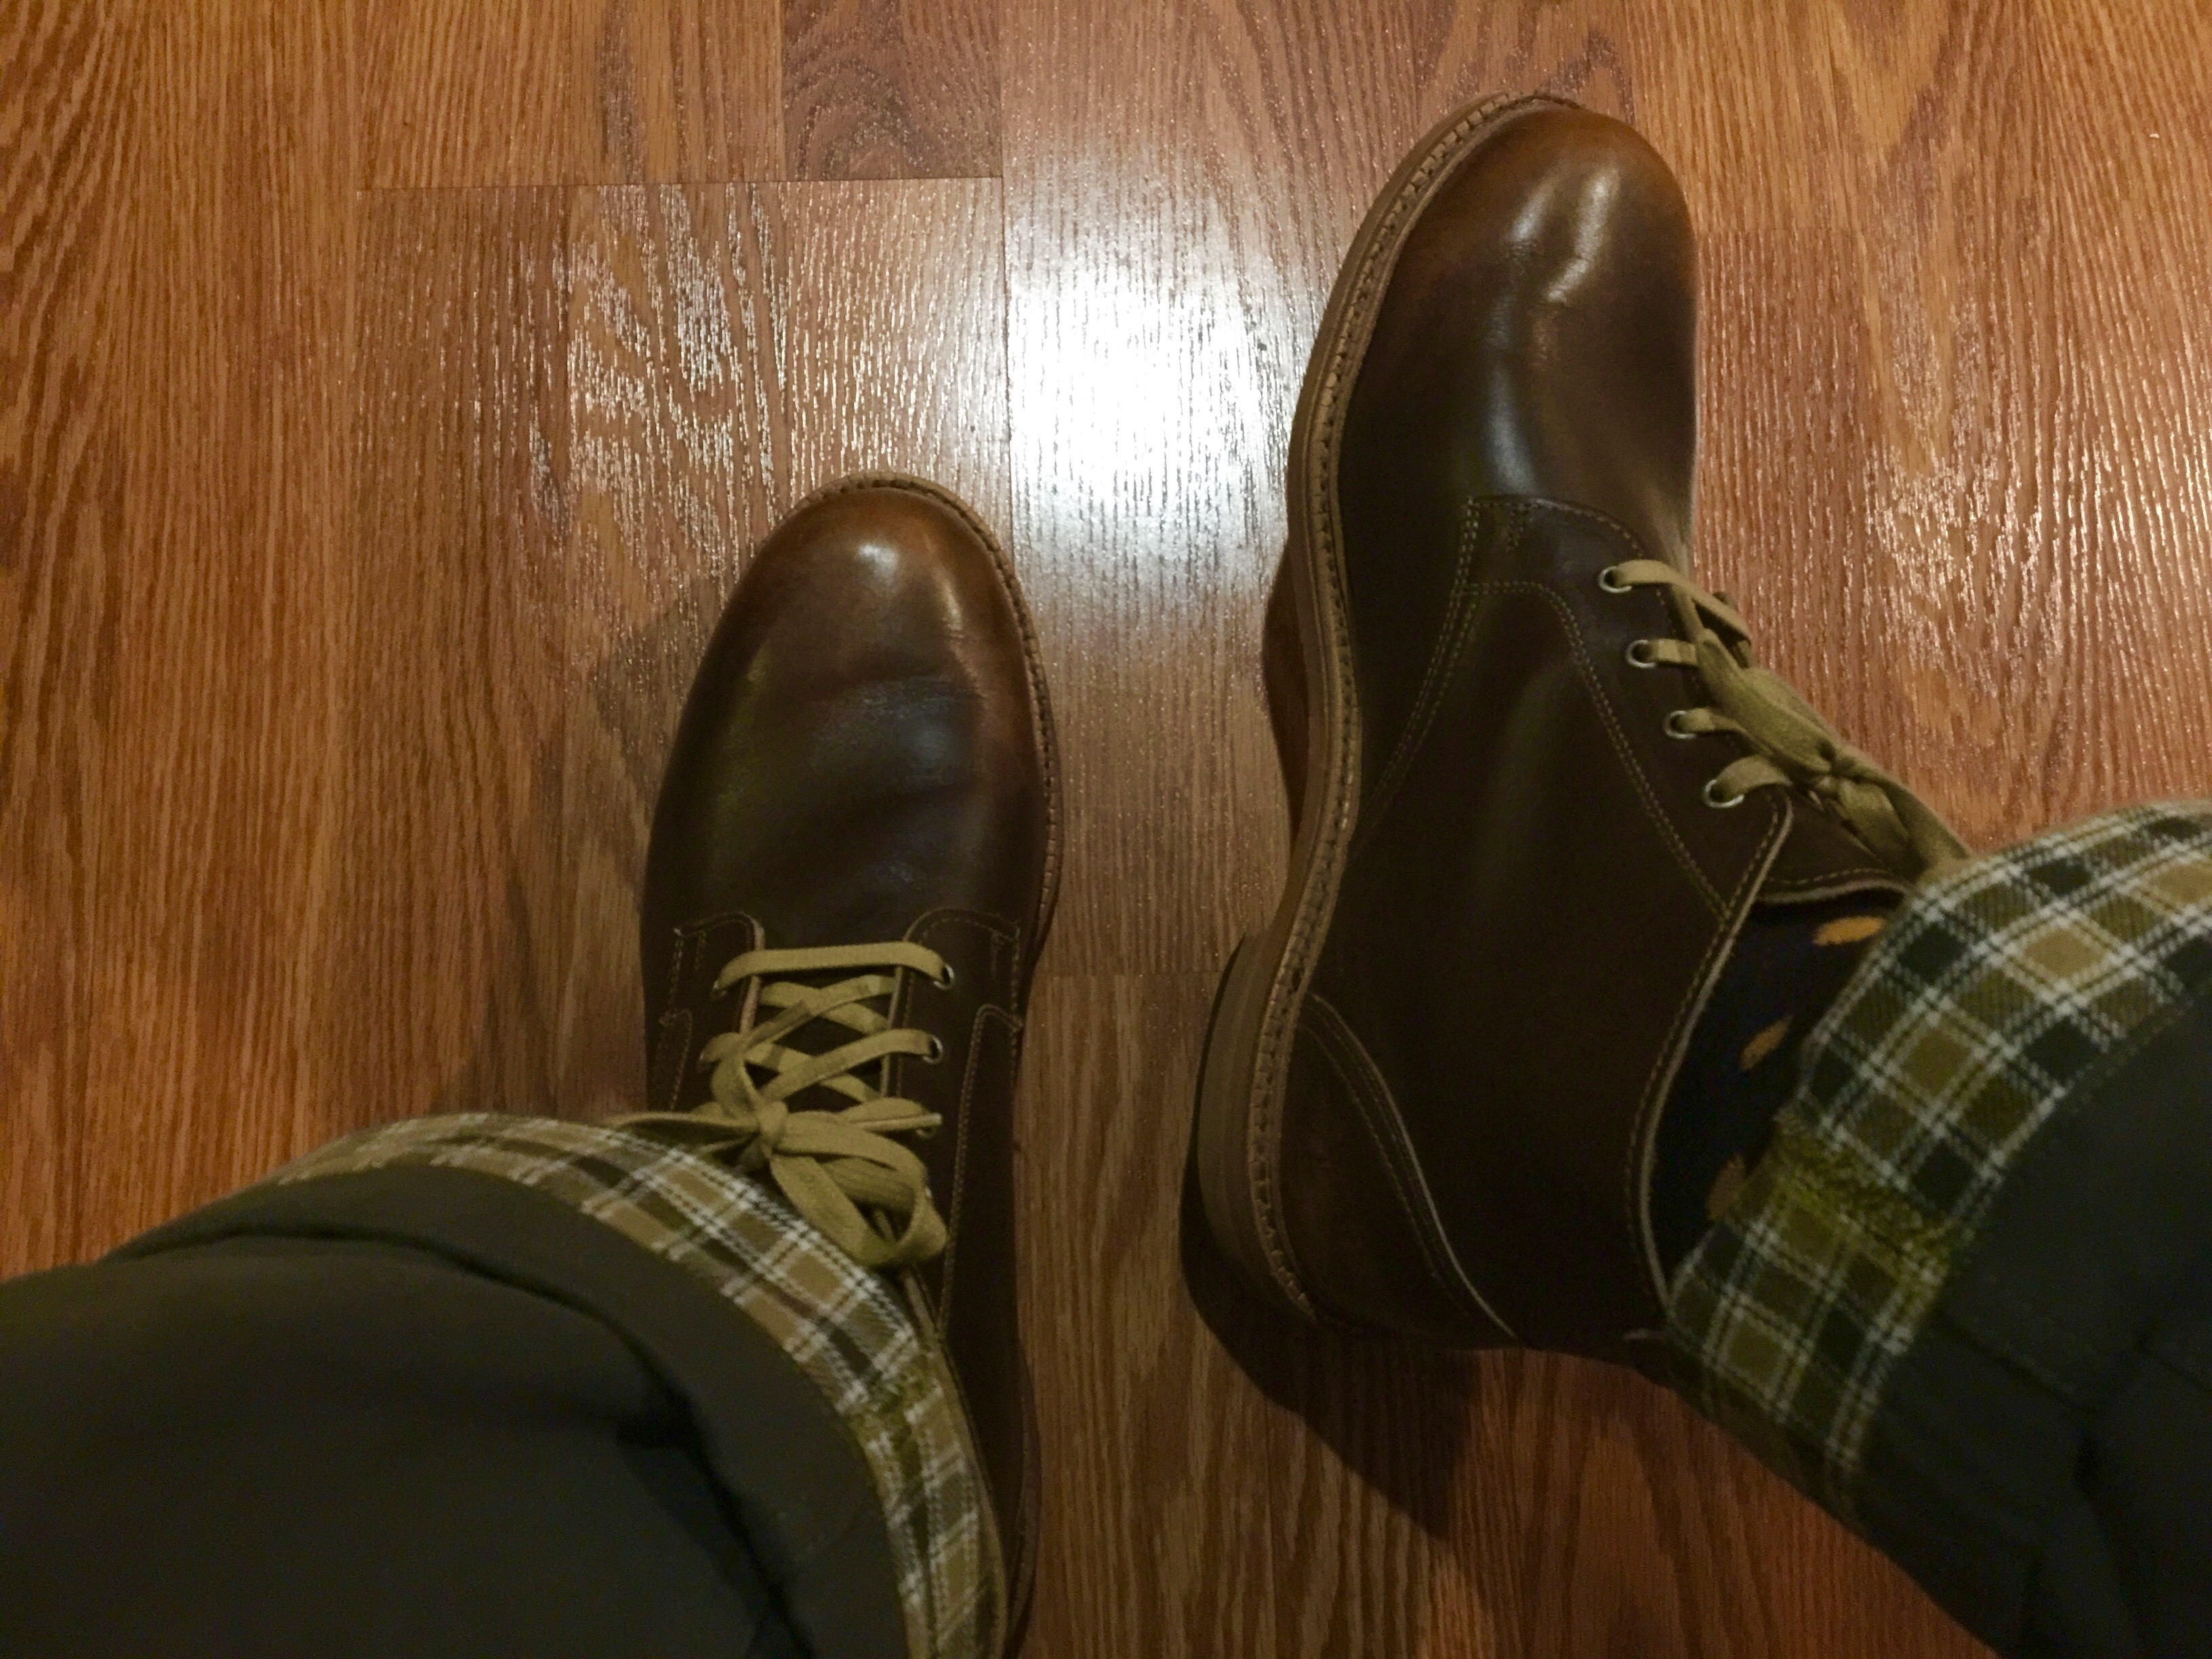 Kahuna75's photos in Allen Edmonds Appreciation Thread 2016 - News, Pictures, Sizing, Accessories, Clothing, etc